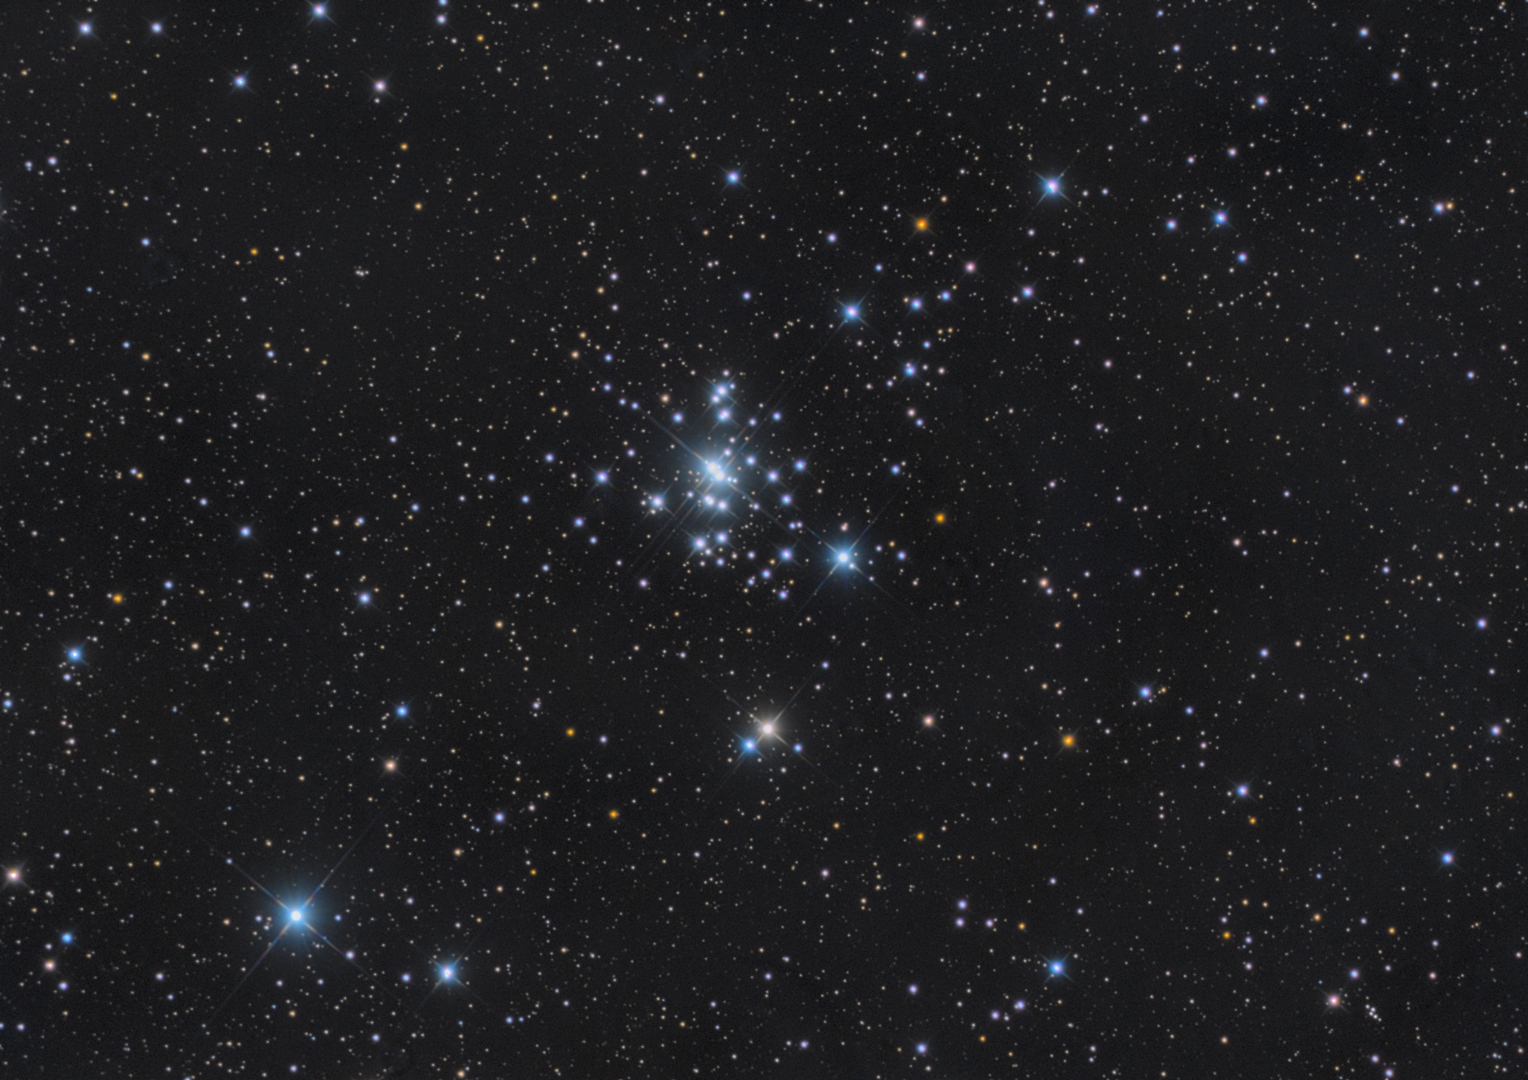 NGC 1502 Open Cluster